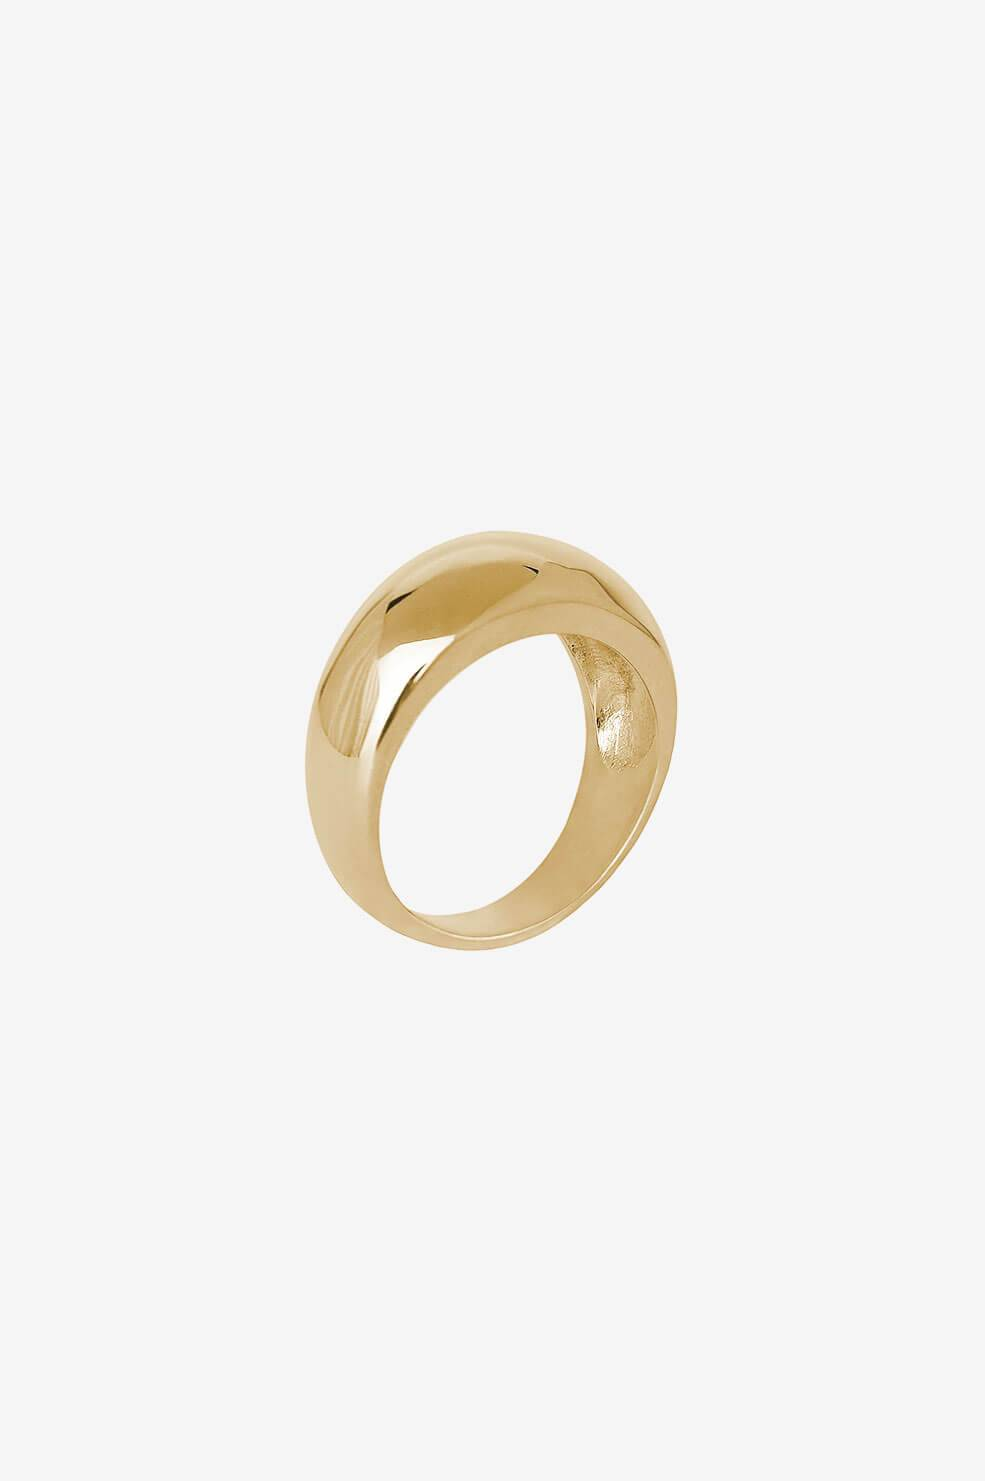 ANINE BING Dome Ring in Gold  - Gold - Size: 8